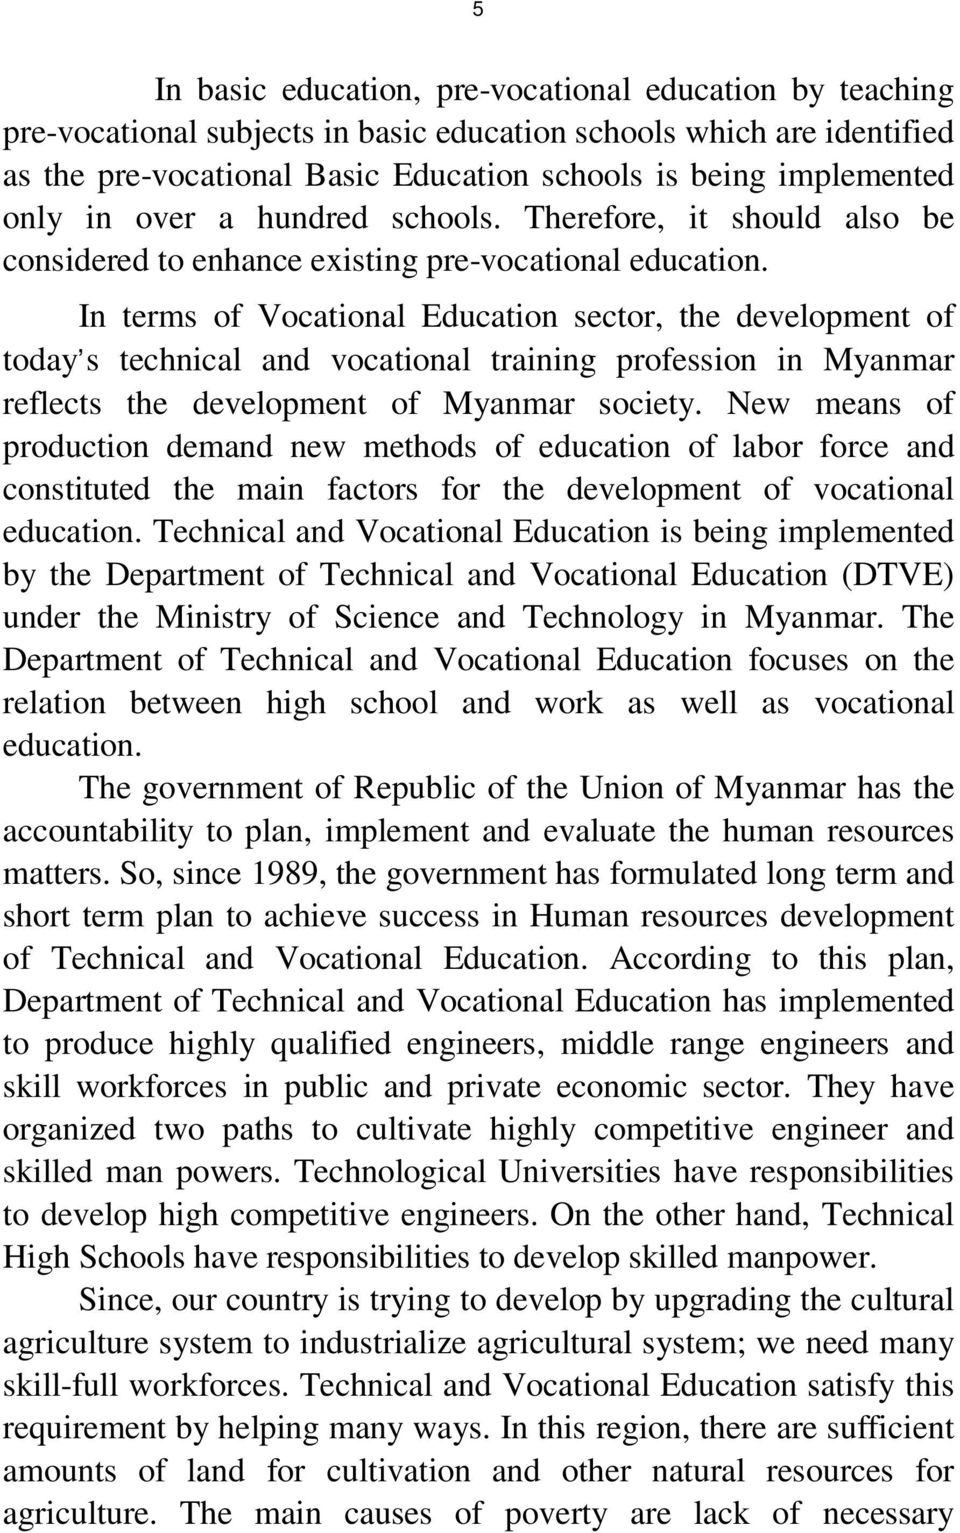 In terms of Vocational Education sector, the development of today s technical and vocational training profession in Myanmar reflects the development of Myanmar society.